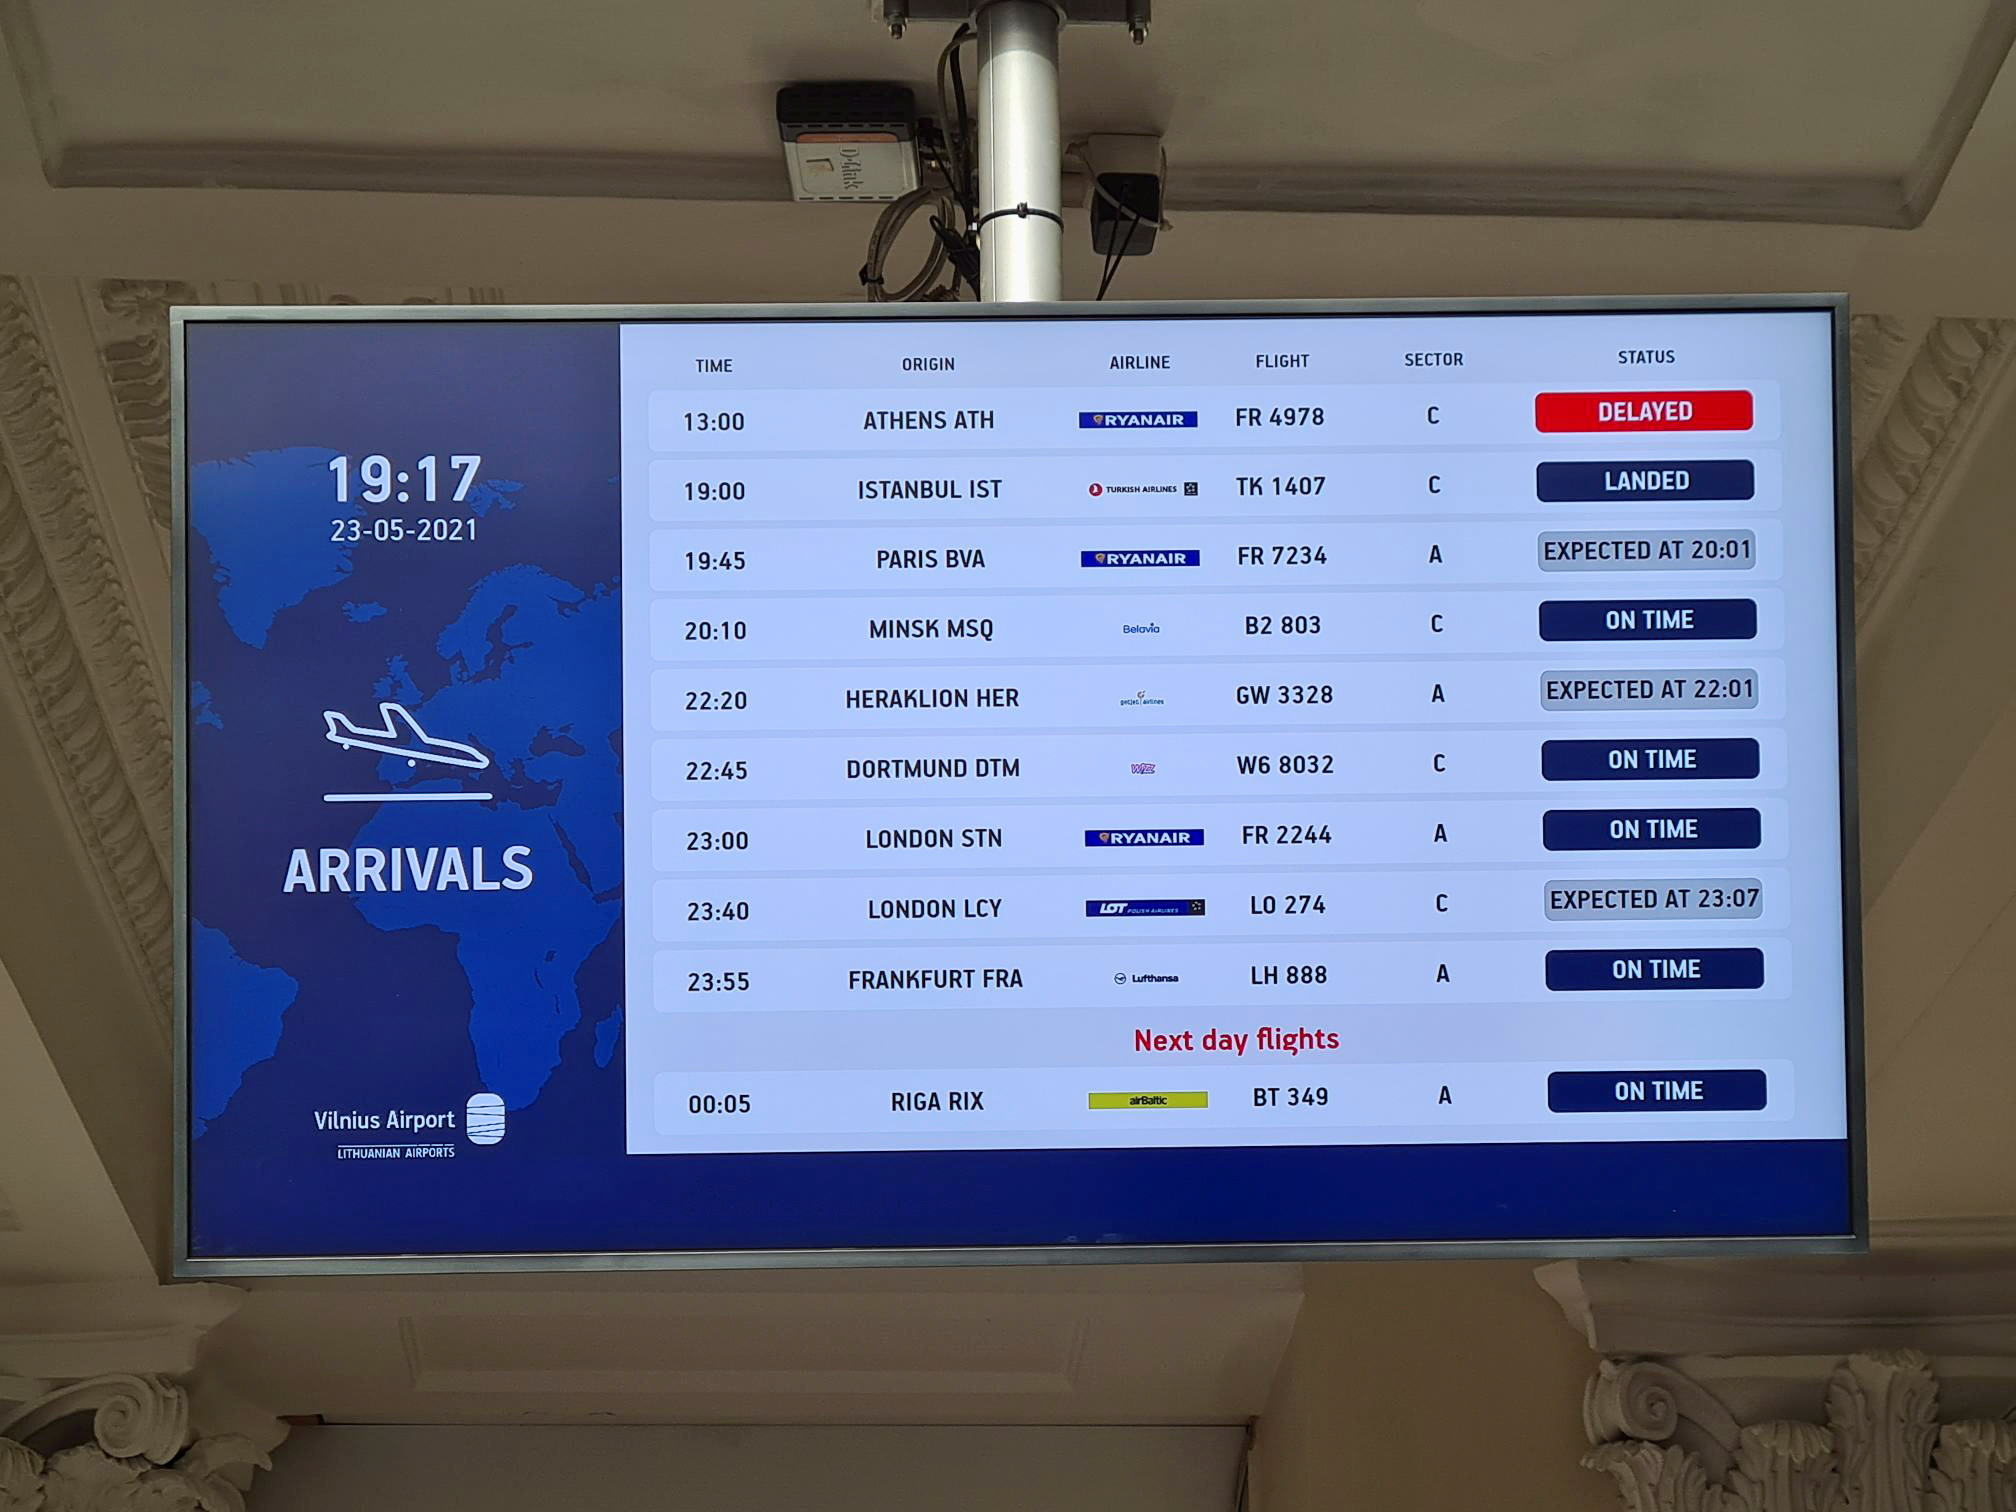 An information board showing international arrivals is pictured at Vilnius Airport, in Vilnius, Lithuania May 23, 2021. REUTERS/Andrius Sytas